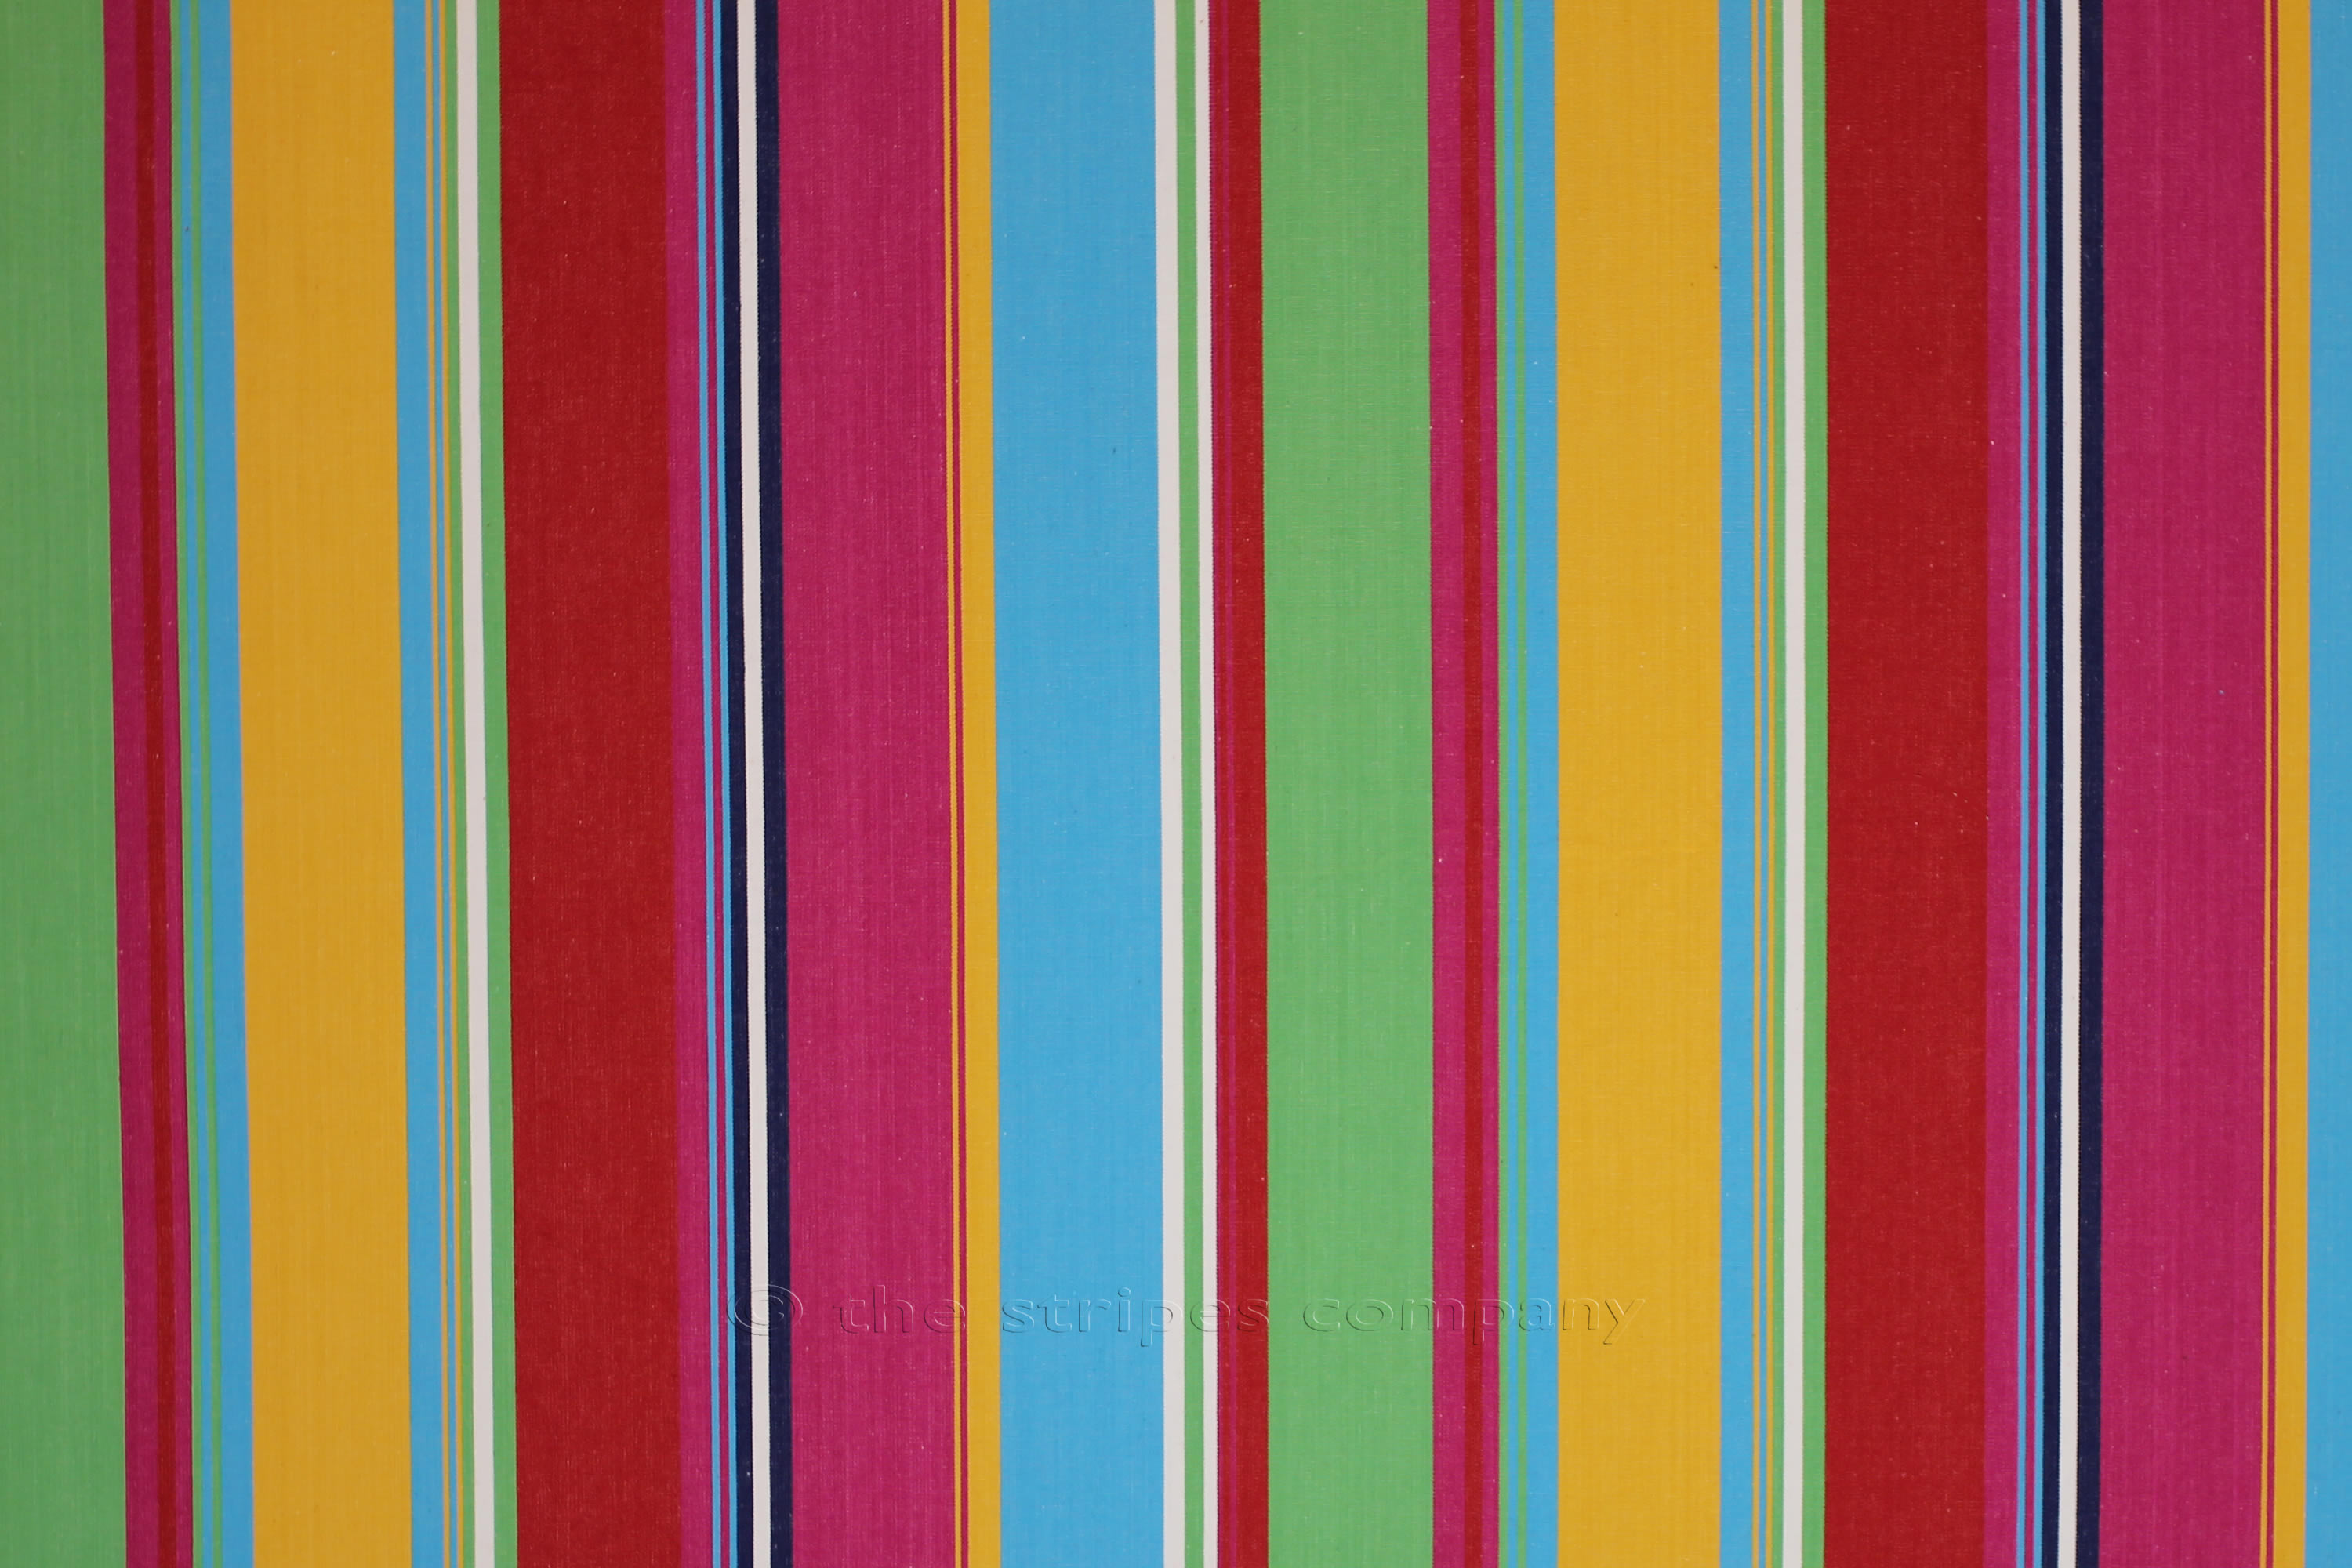 pink, green, yellow - Striped Fabrics | Stripe Cotton Fabrics | Striped Curtain Fabrics | Upholstery Fabrics